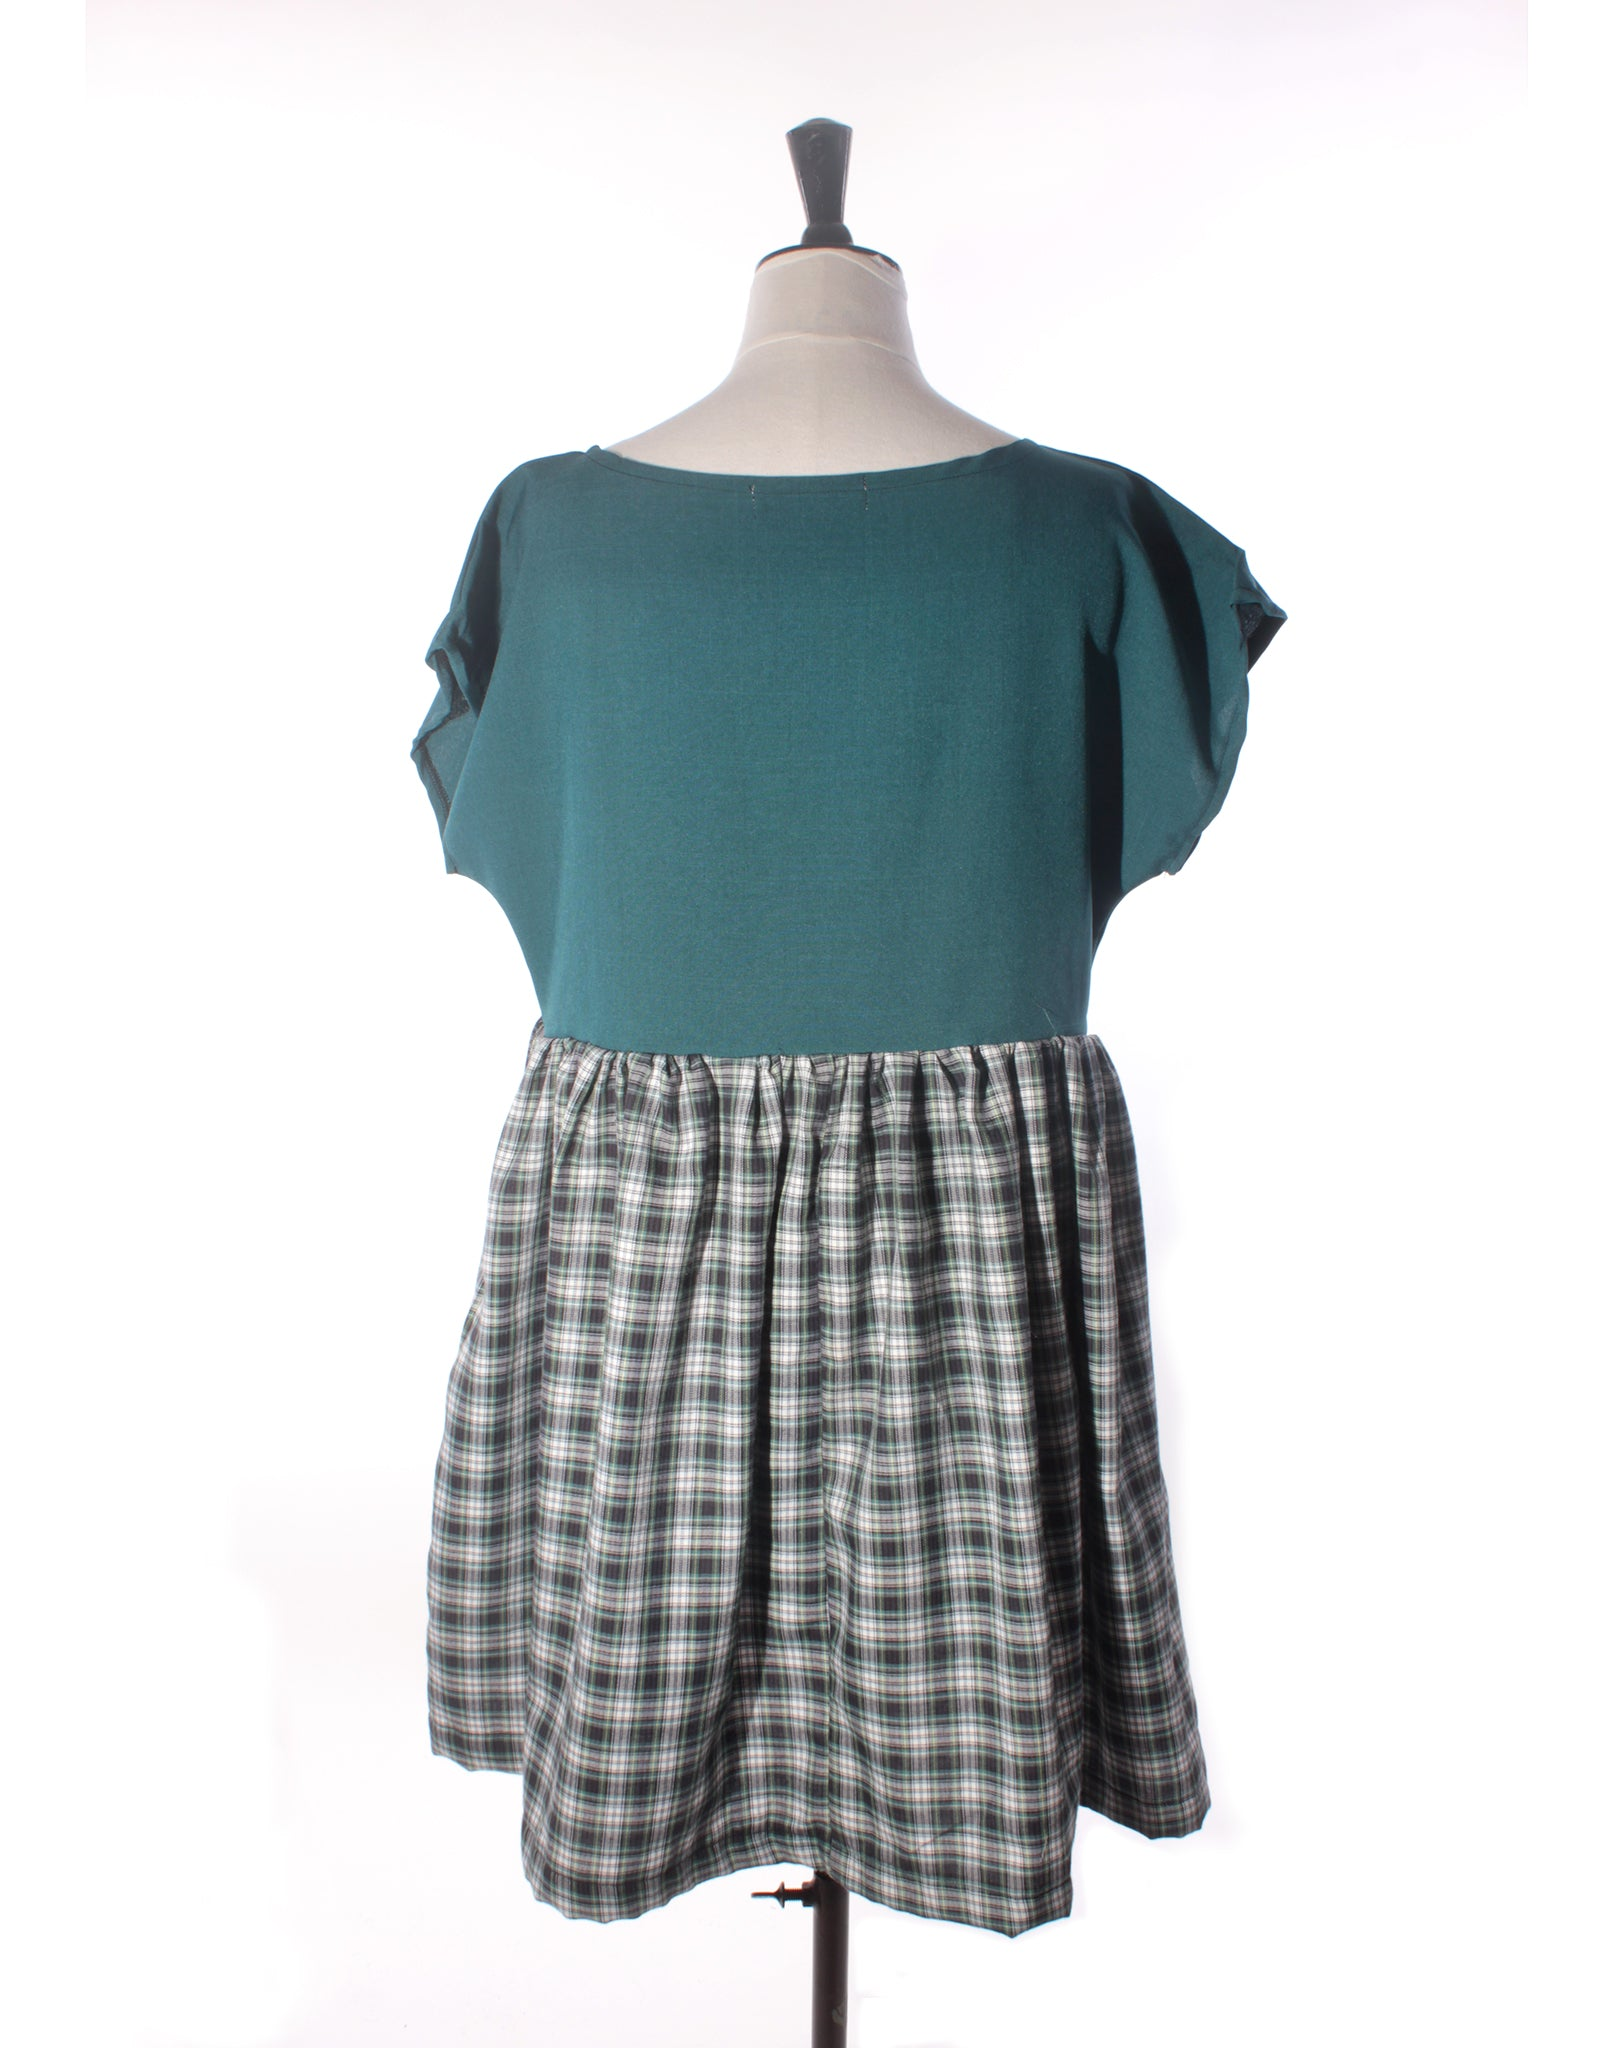 Dark Teal & Tartan Wool Collector Dress - Size M